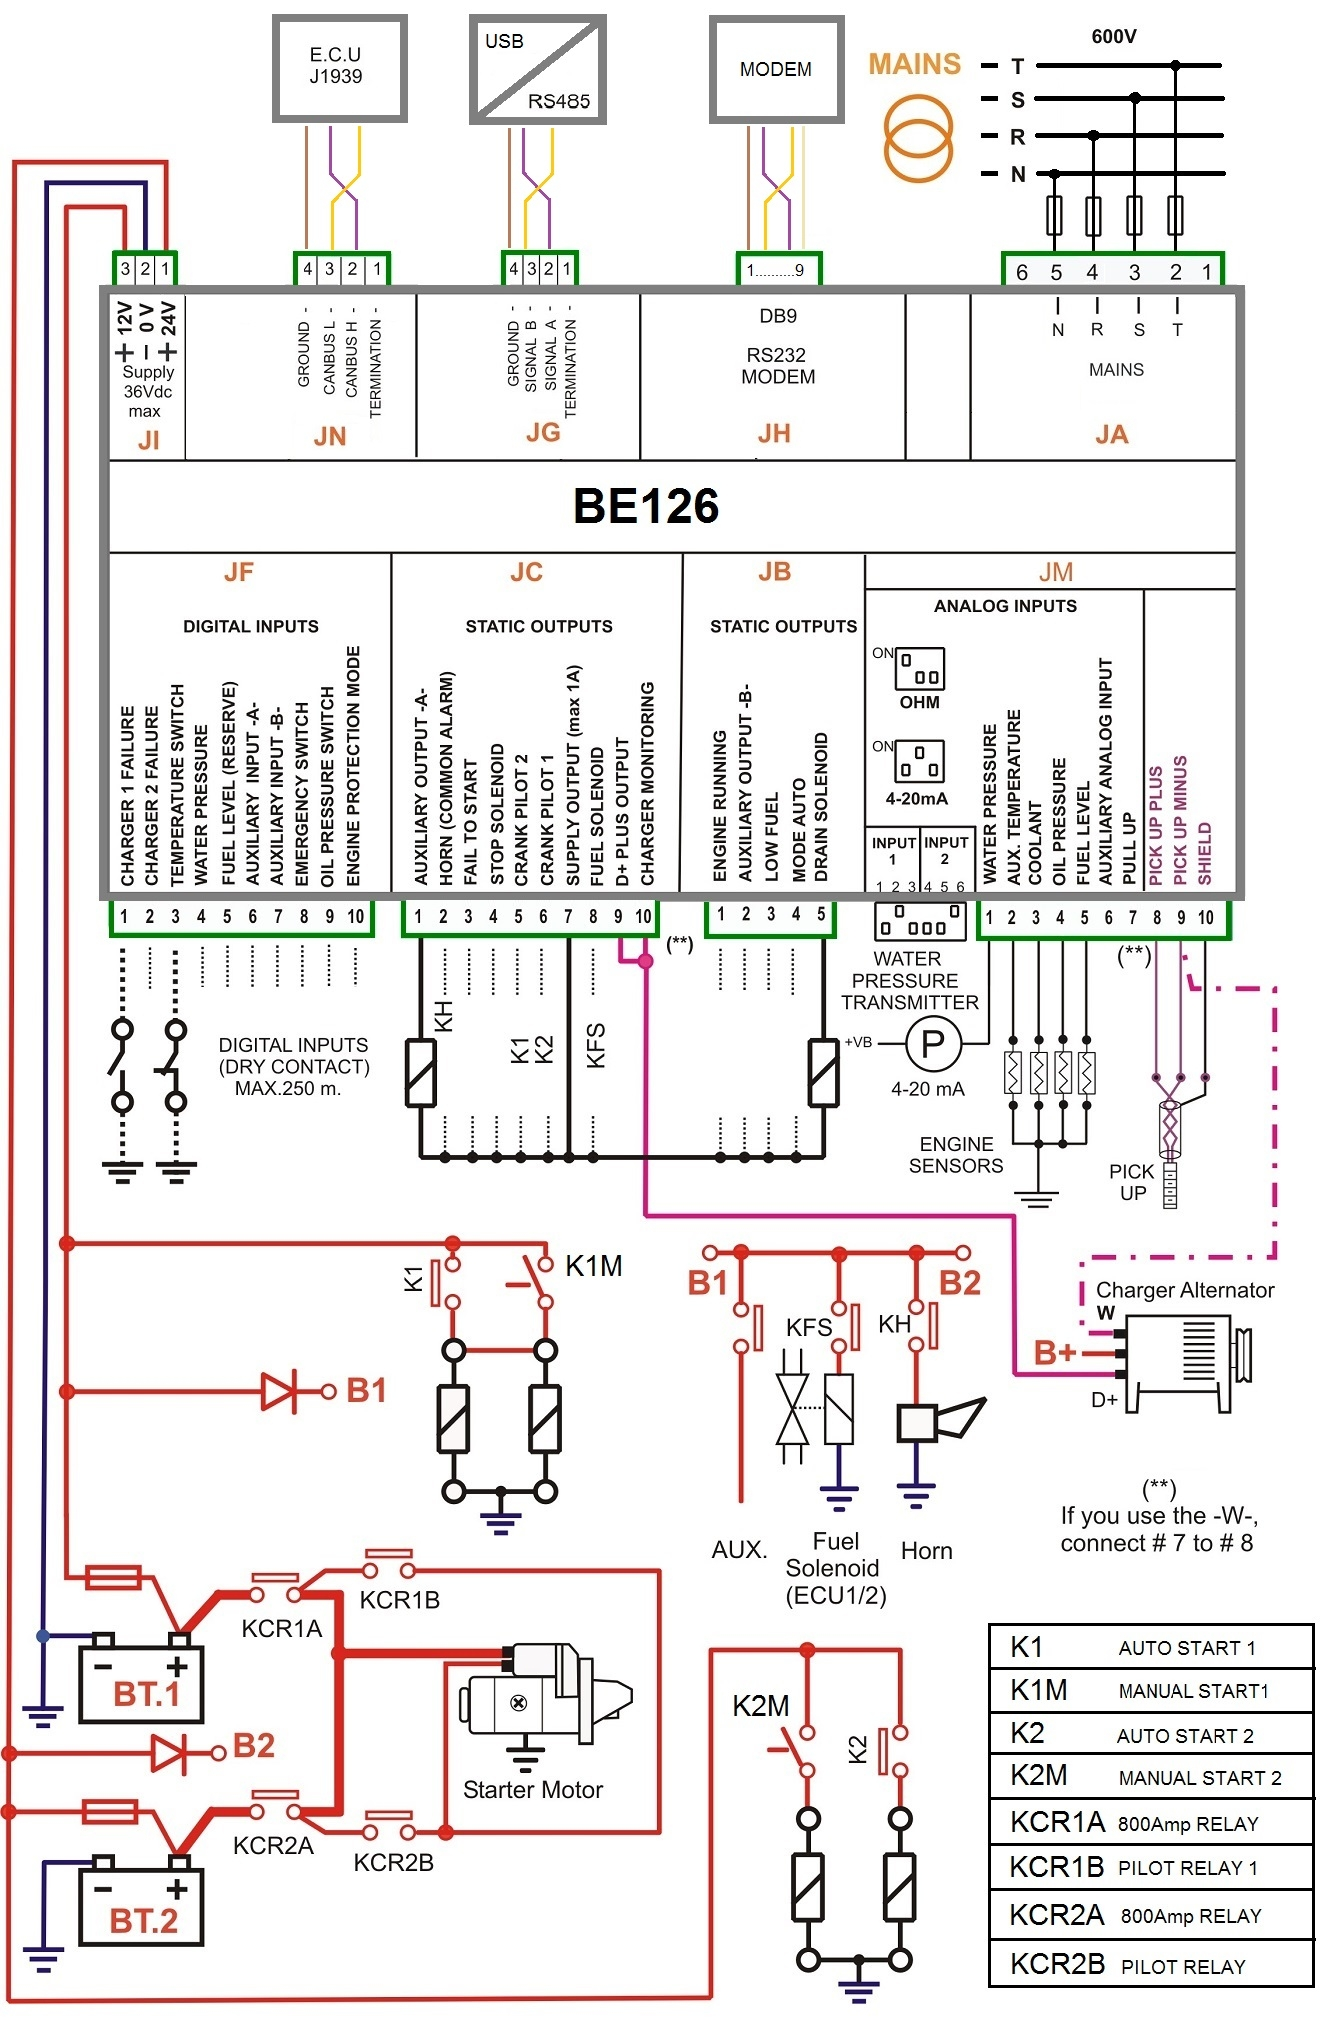 pump control panel wiring diagram schematic Download-Diesel Engine Fire Pump Controller Wiring Diagram Lovely Hardinge Hlv Parts List Page Electric Control Panel 17-j